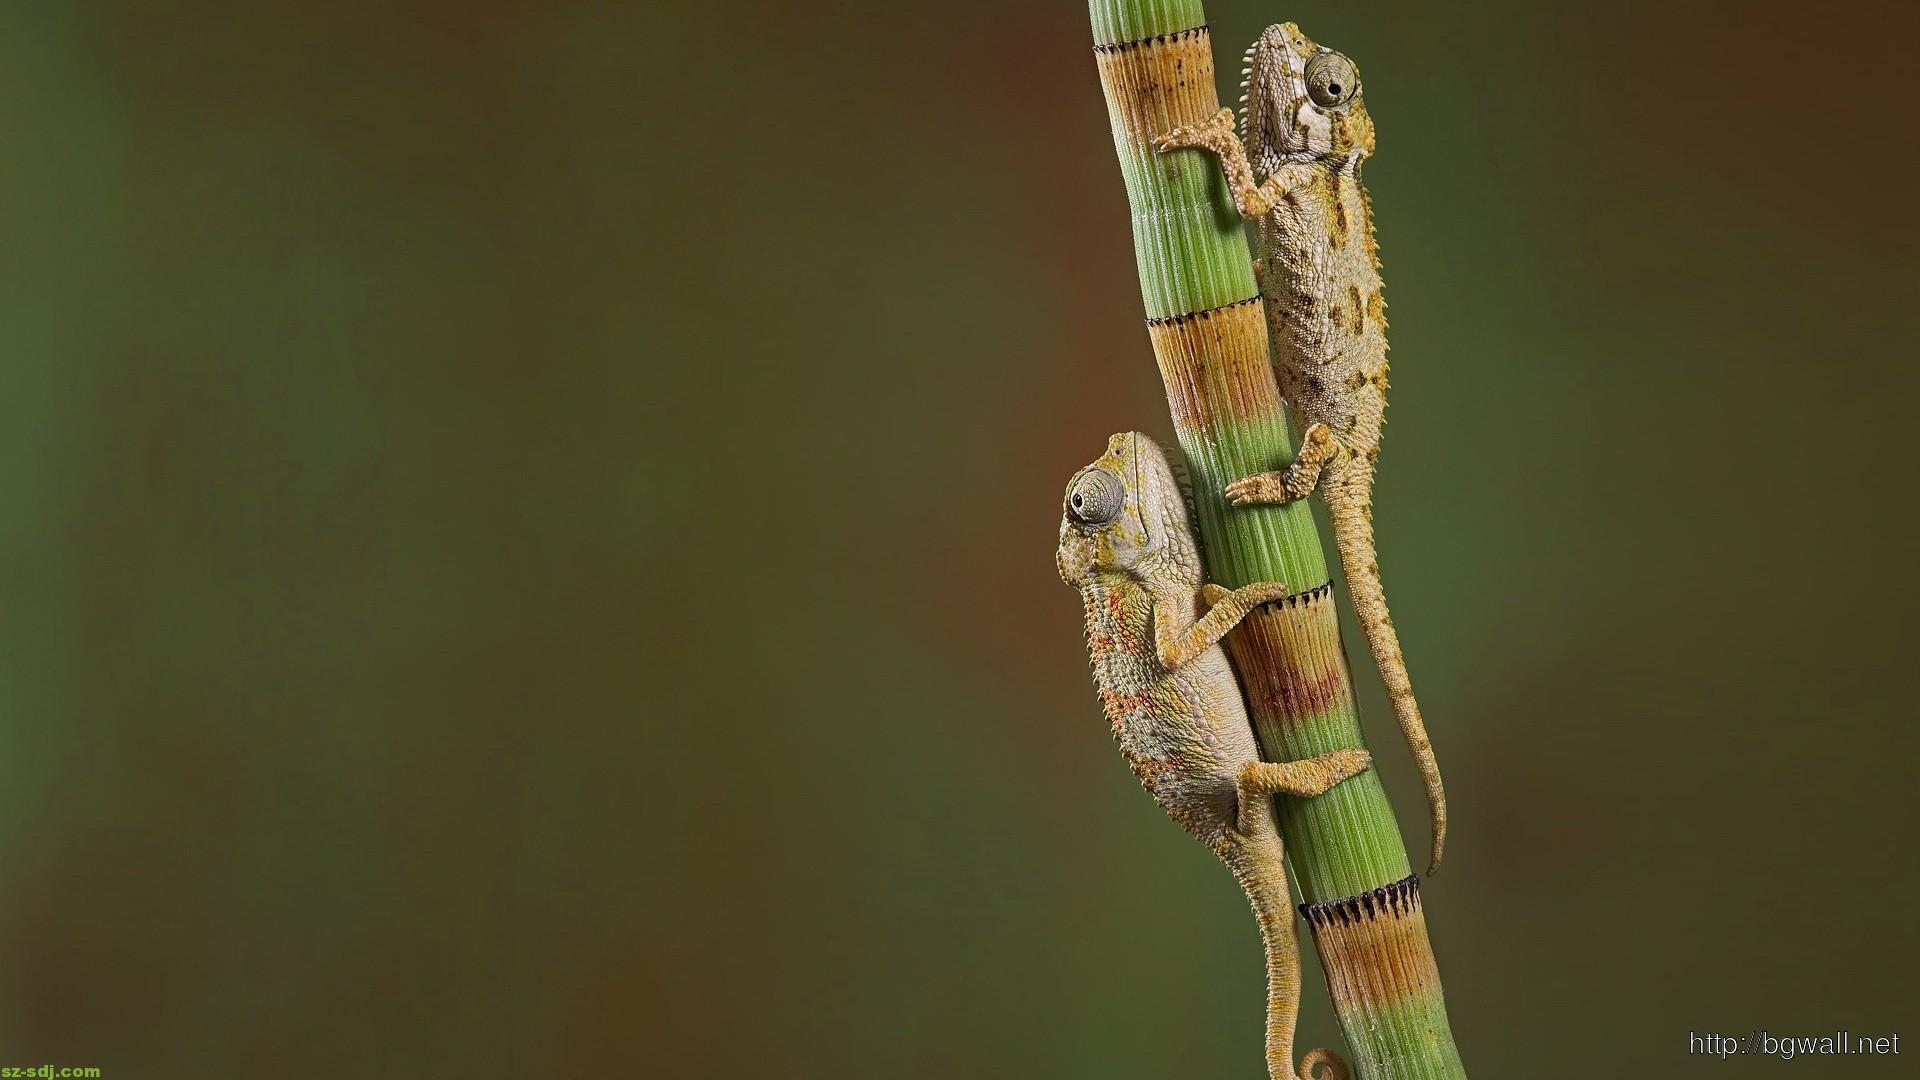 chameleons-nature-wallpaper-high-definition